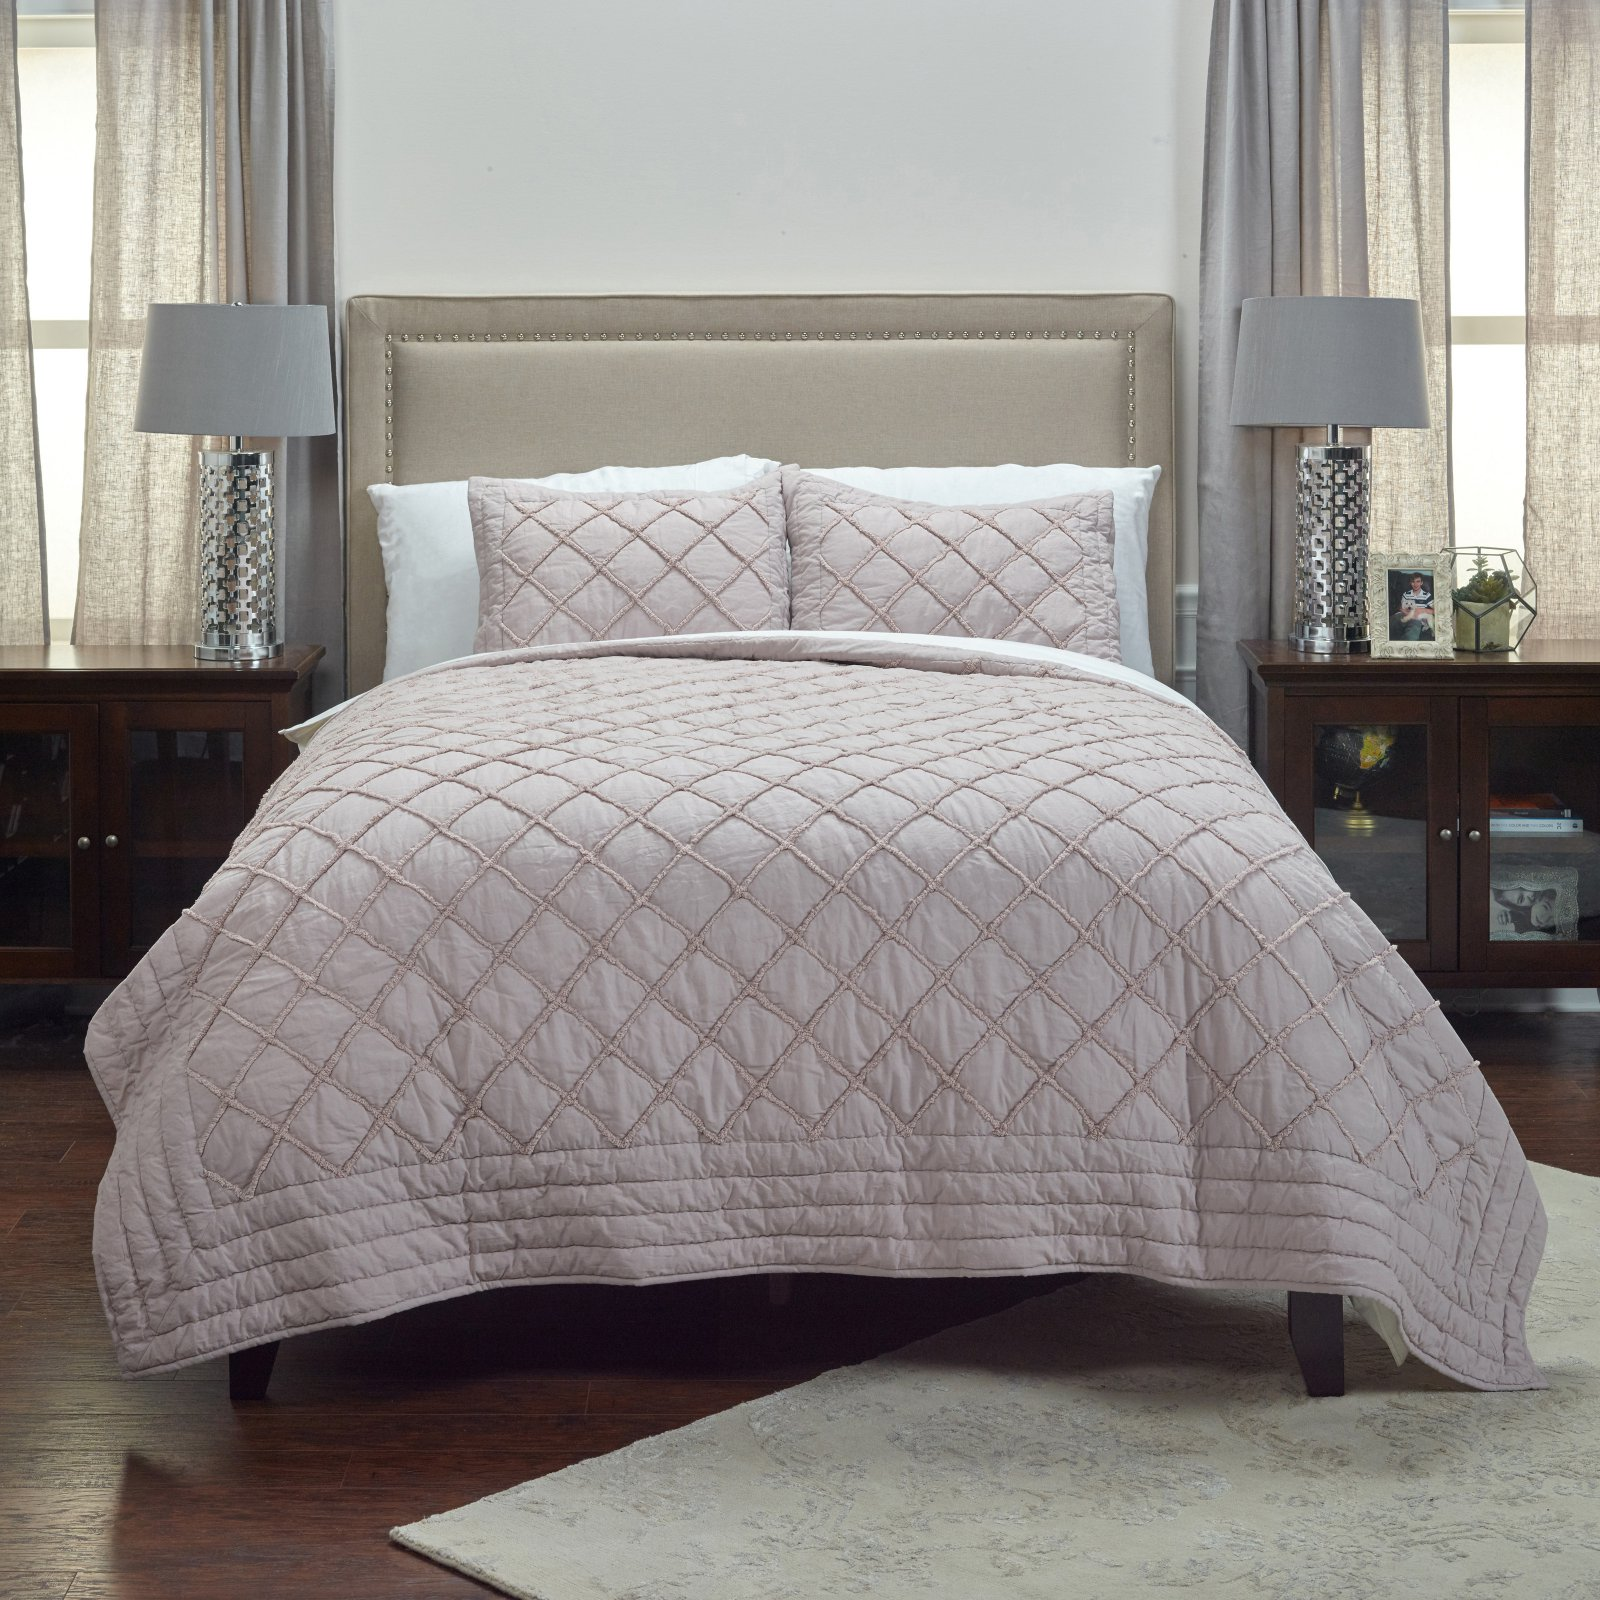 Rizzy Home BQ4235 Twin Quilt